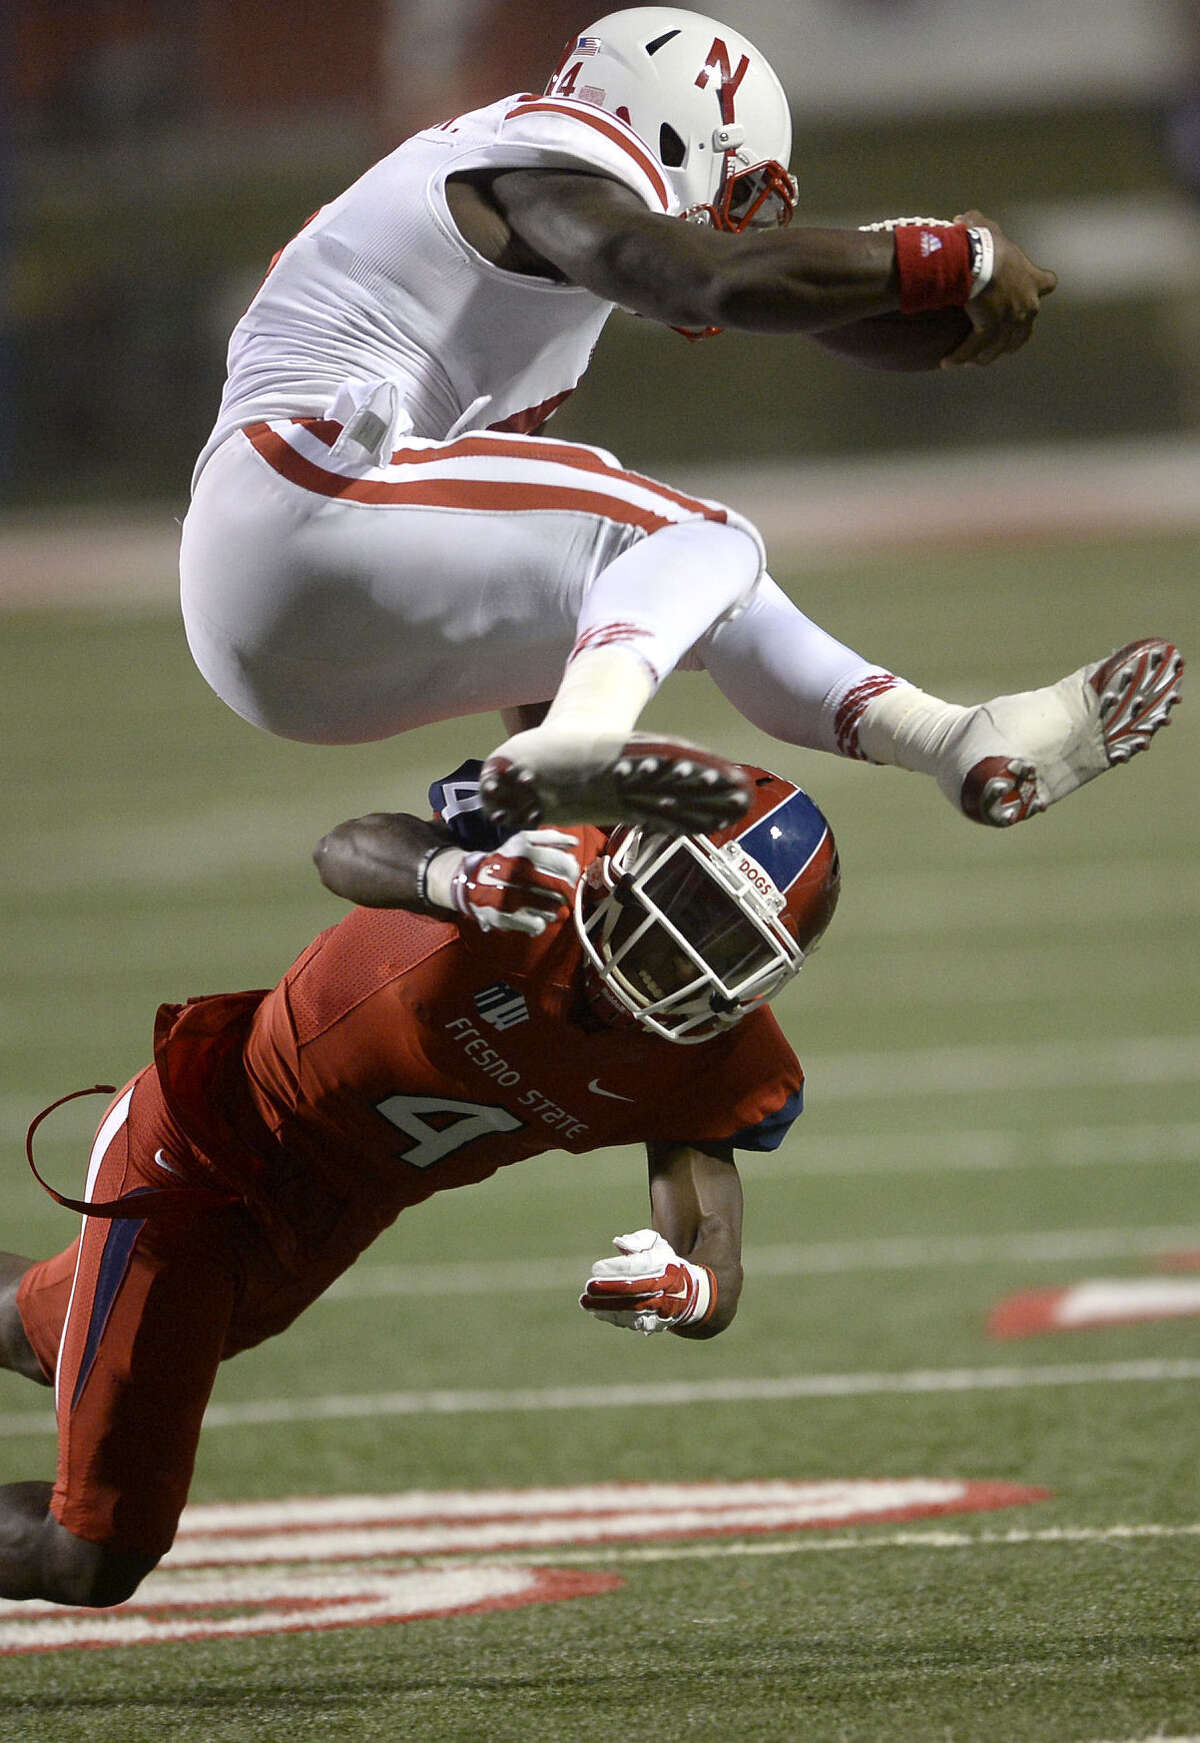 Nebraska QB Tommy Armstrong Jr. showed his running ability Saturday by hurdling over Fresno State's Shannon Edwards.